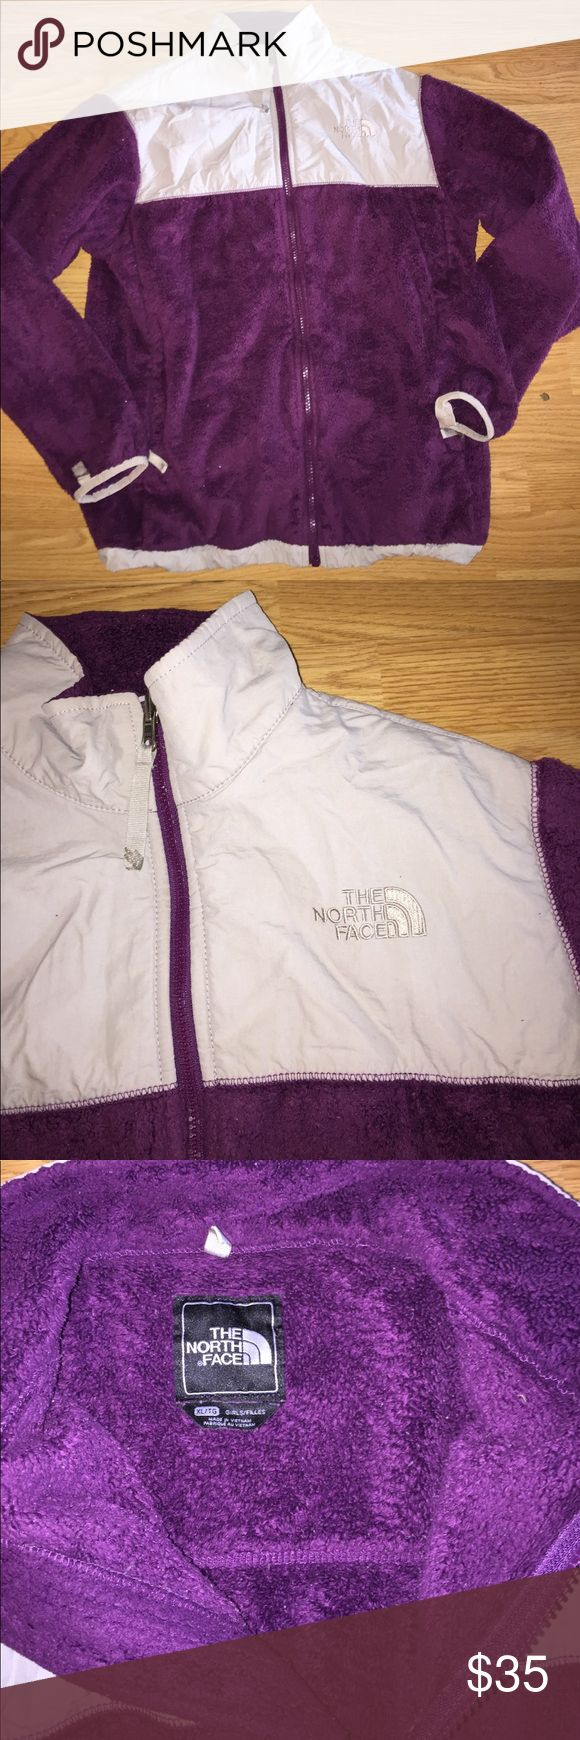 NORTHFACE jacket ladies small / kids XL purple NORTHFACE brand. Full zip up jacket. Tag says kids XL but I wore it and I'm a ladies small. Purple color with light gray accents. Zipper pockets in front. Jacket has hole on cuff of sleeve at lining edge (see pic). Could easily be sewn back together. This jacket shows wear so price reflects! This is still a good warm jacket though! Bundle with another item from my closet for a discount! North Face Jackets & Coats